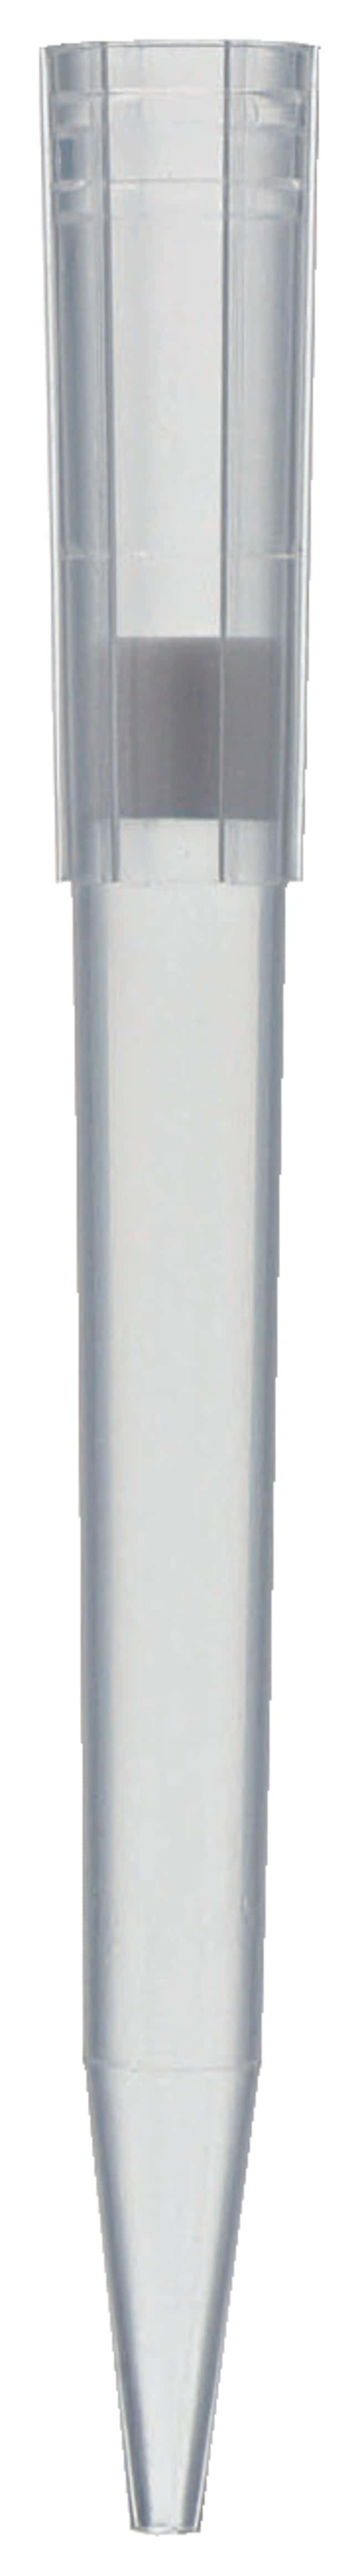 FisherbrandLarge Orifice/Genomic Aerosol-Barrier Tips Color: natural; Volume: